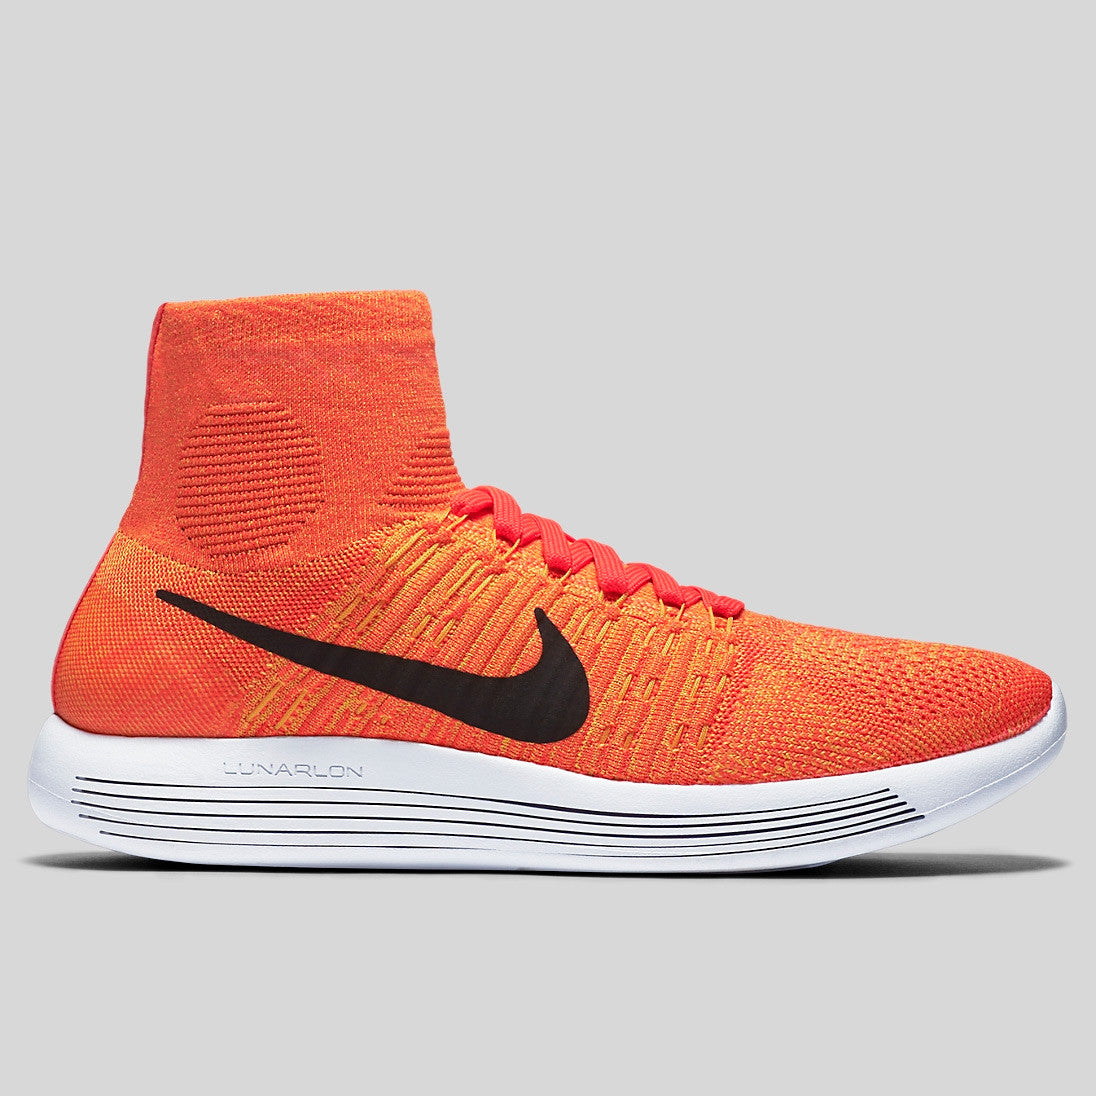 279f5cf5d347 Nike Lunarepic Flyknit Total Crimson Black Bright Citrus (818676-800 ...